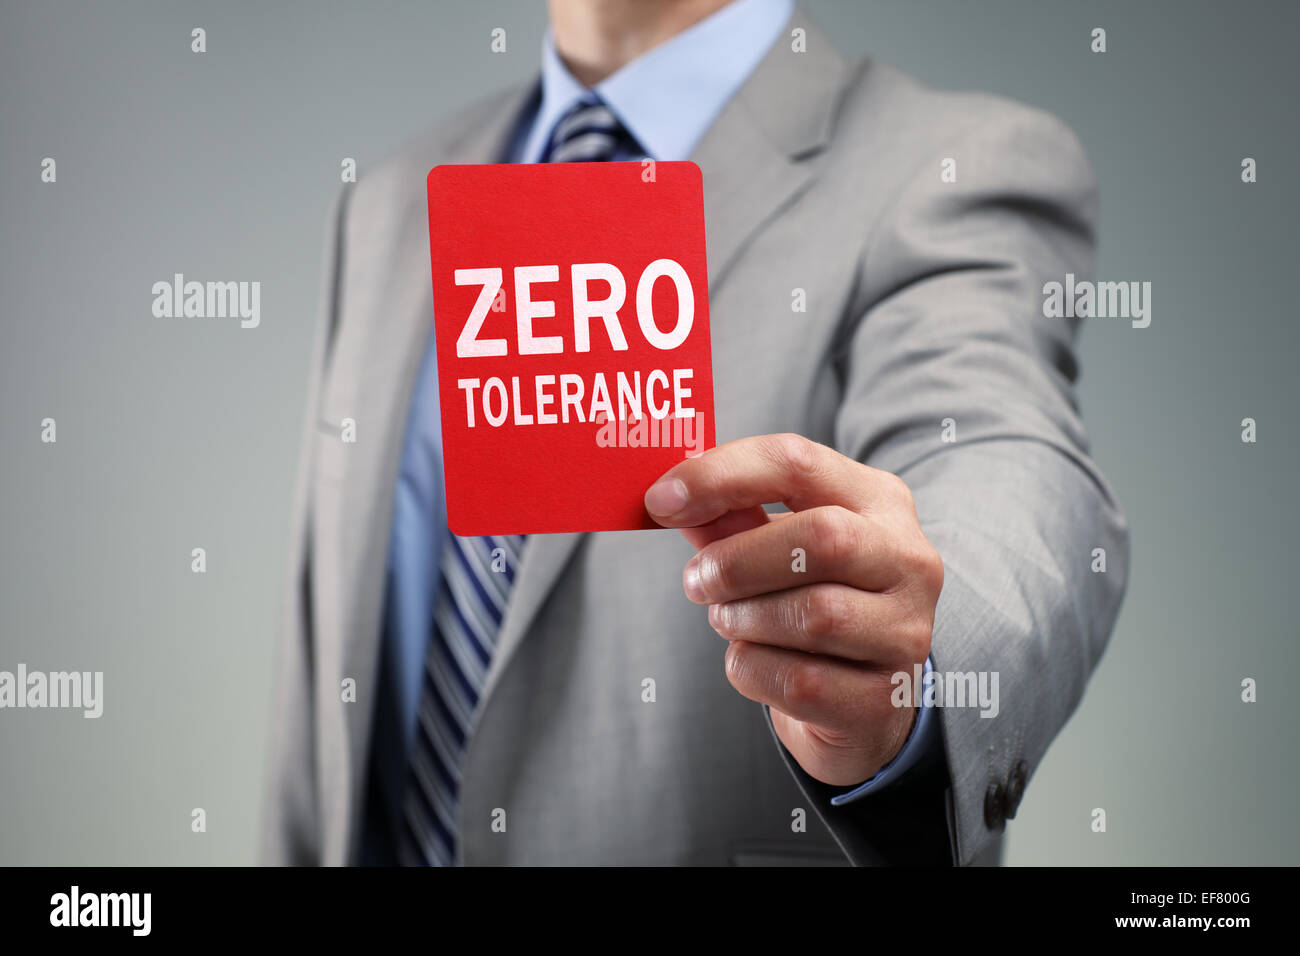 Businessman showing the zero tolerance red card - Stock Image